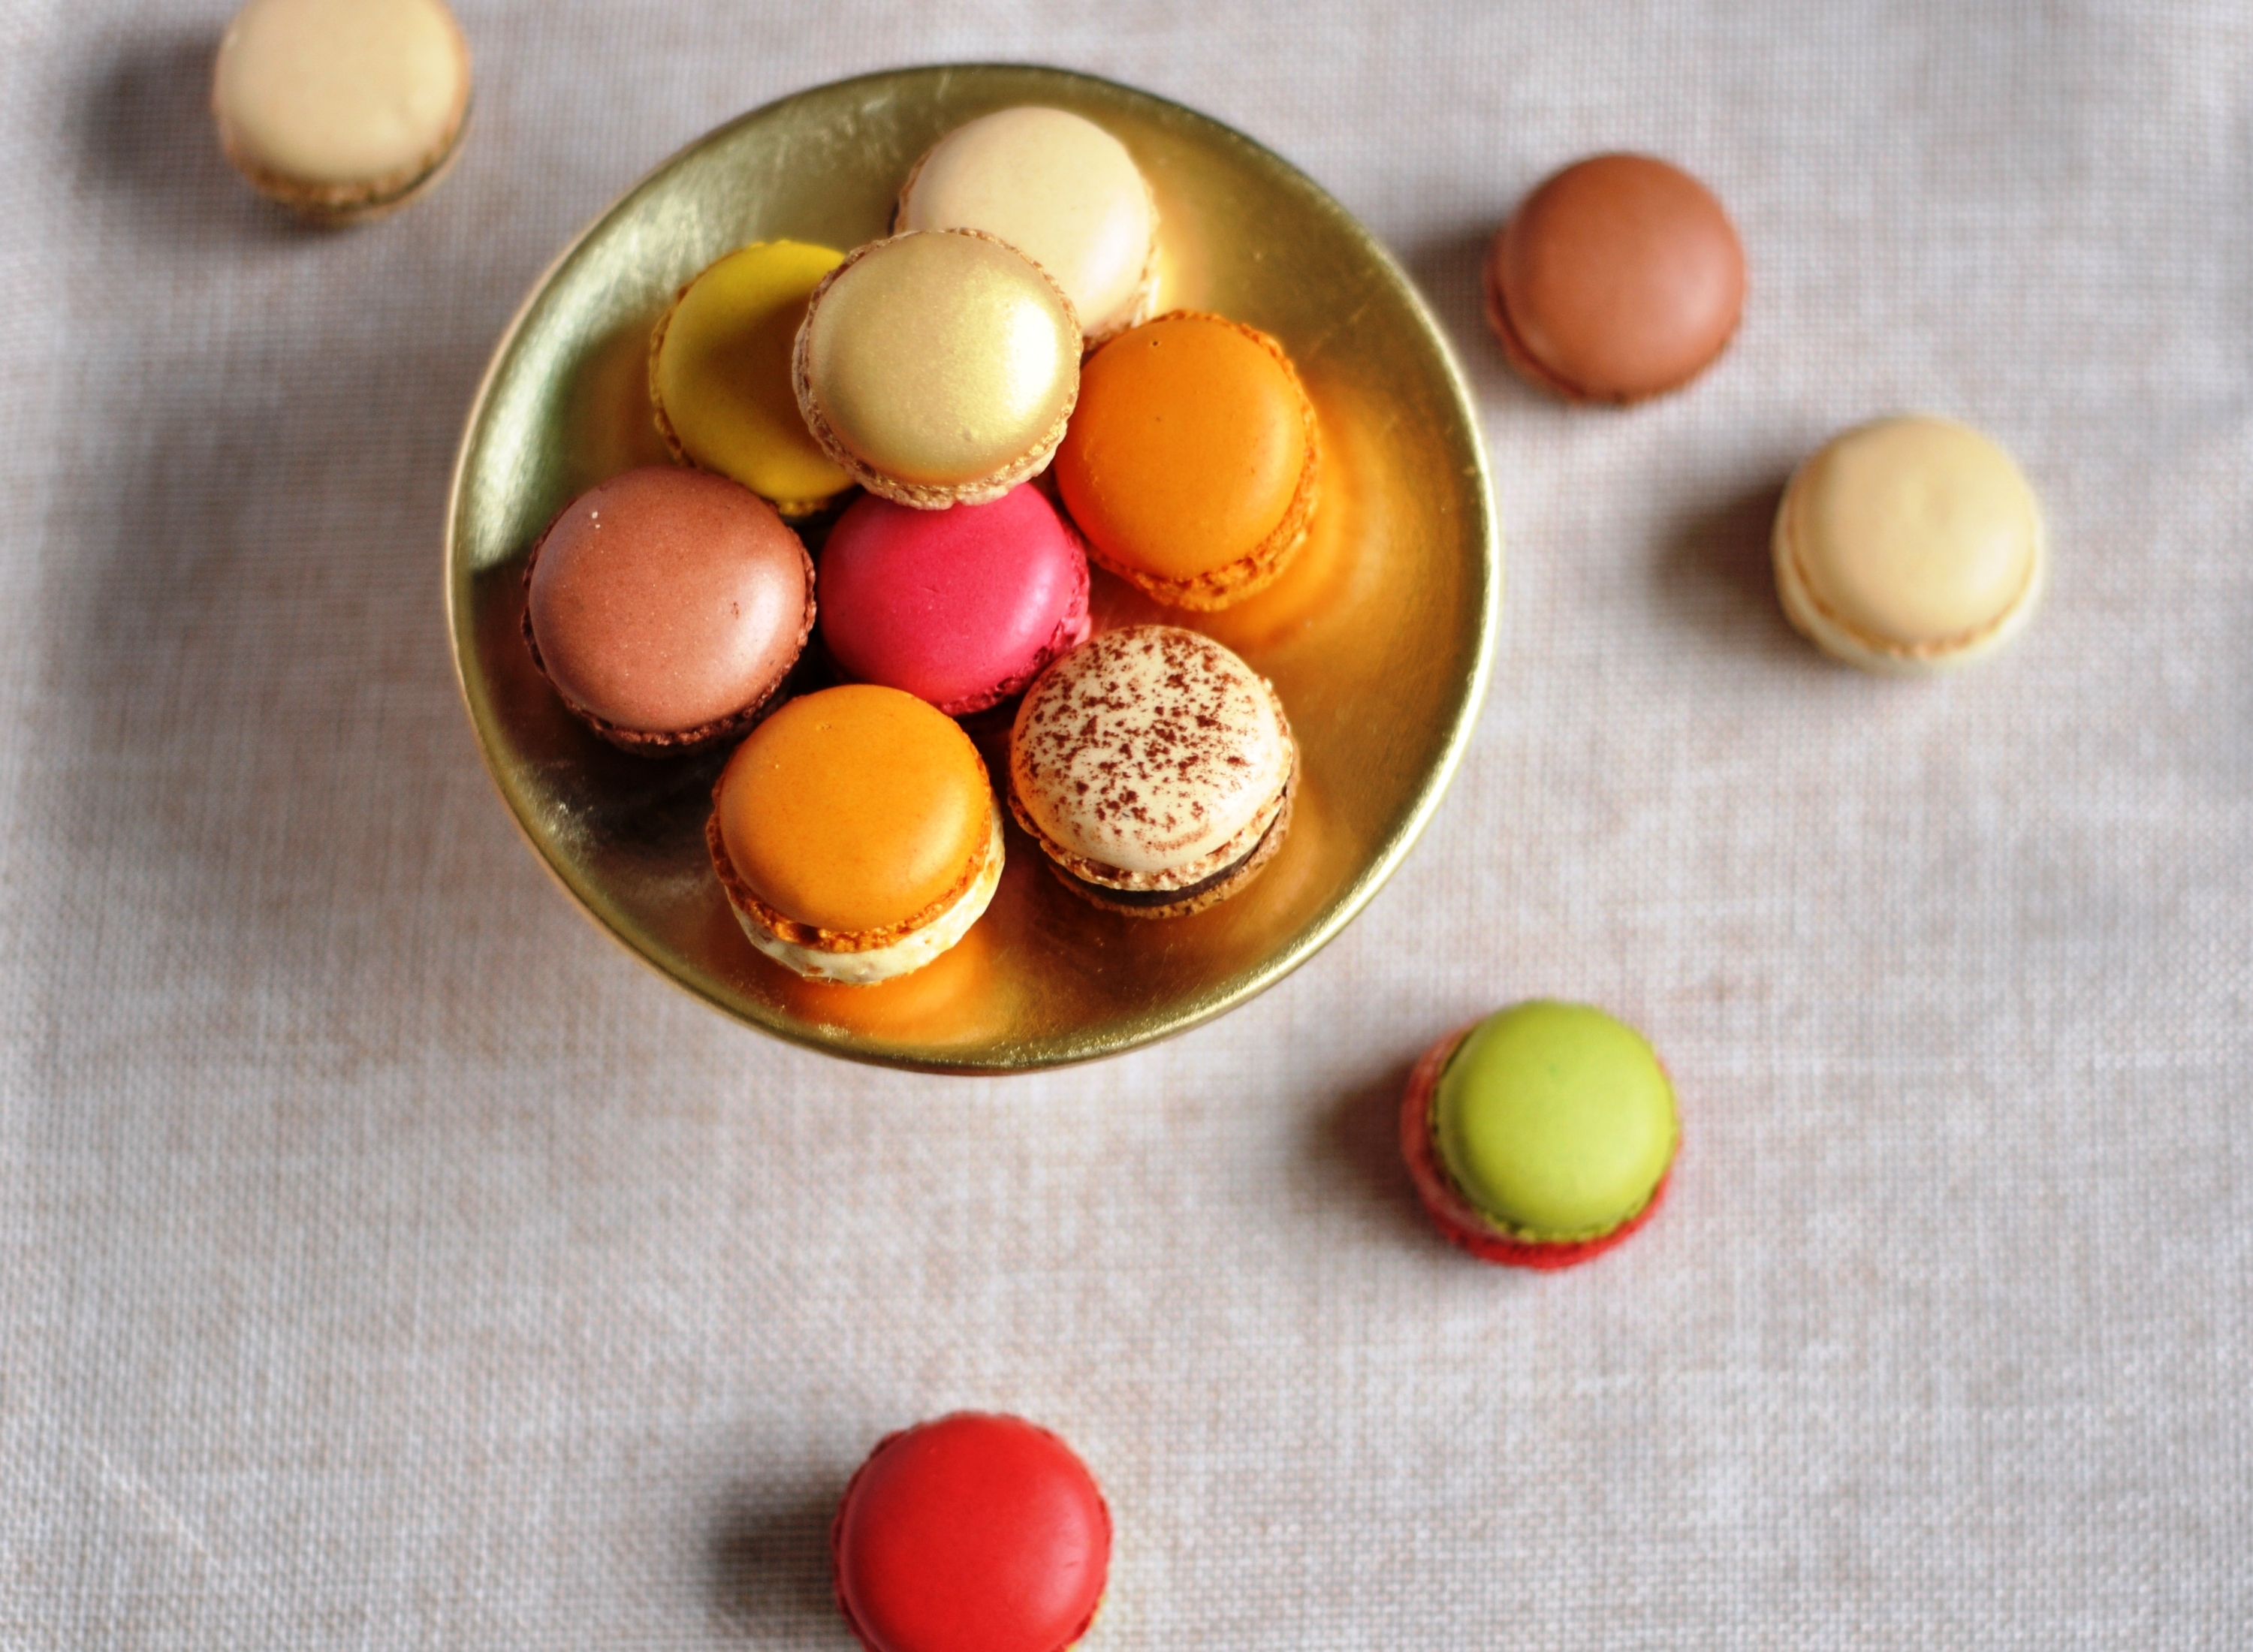 Macaron full hd wallpaper and background image 3000x2200 - Macaron iphone wallpaper ...